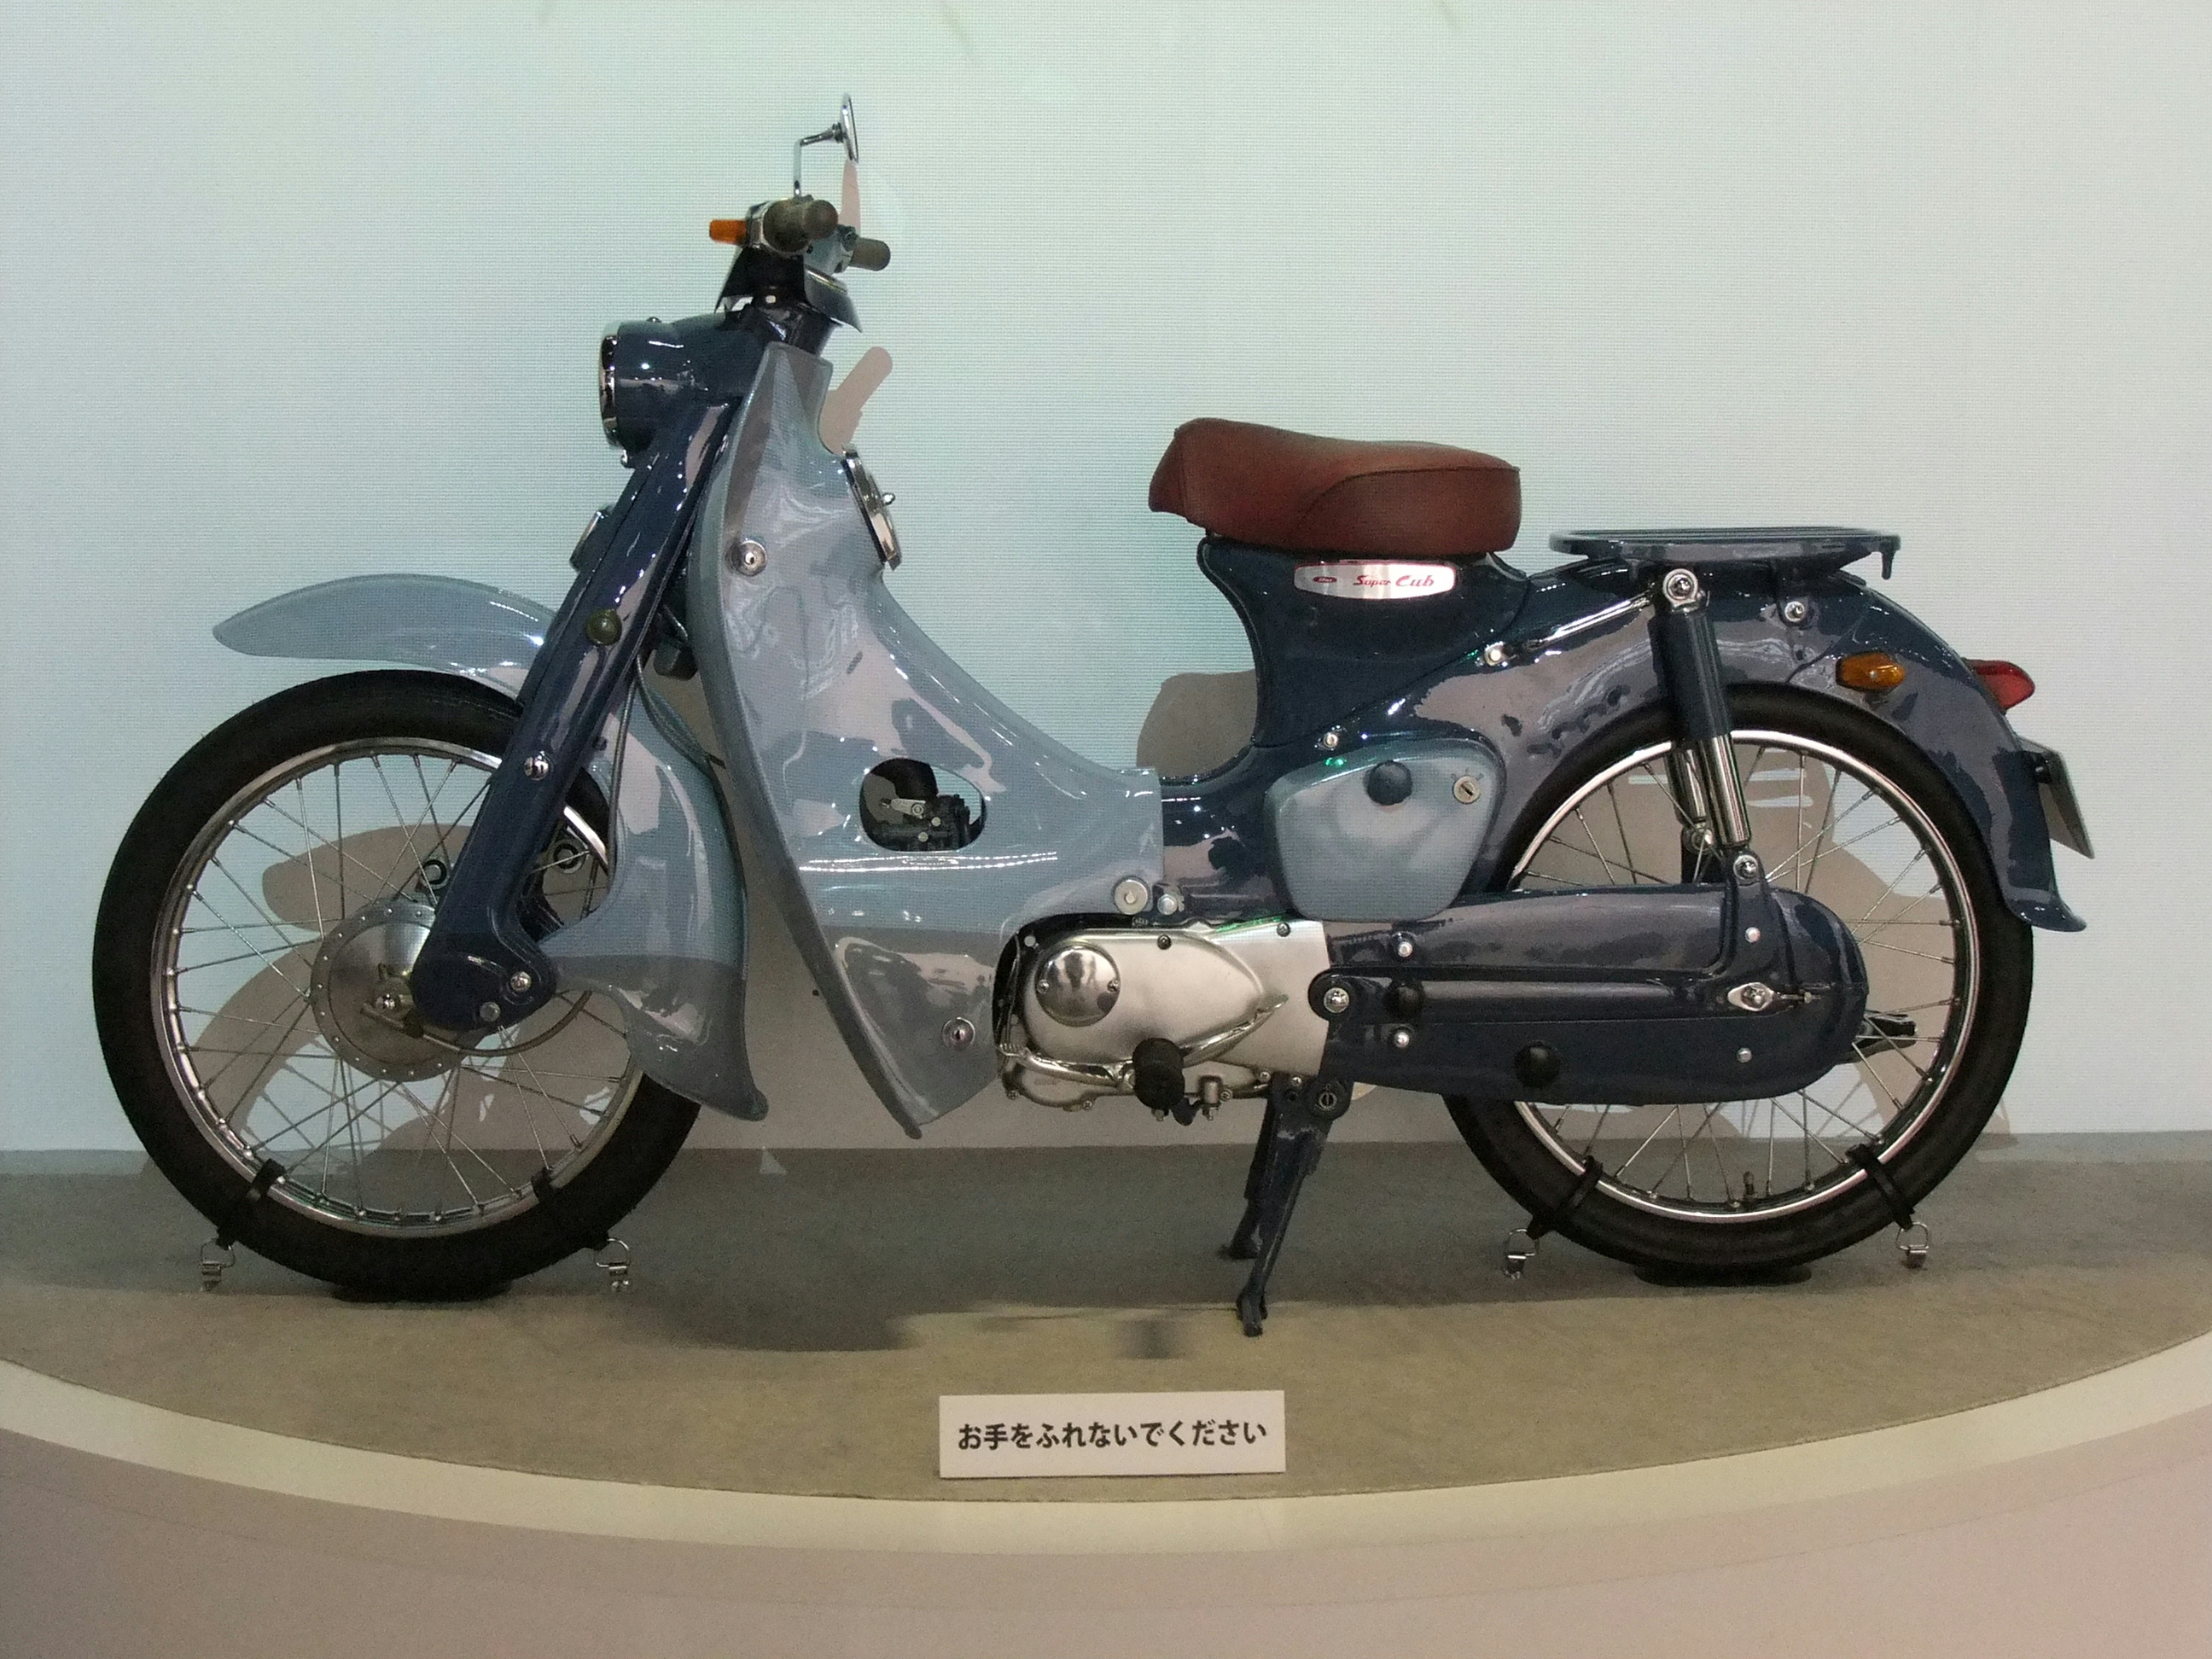 Honda Super Cub - Wikipedia on